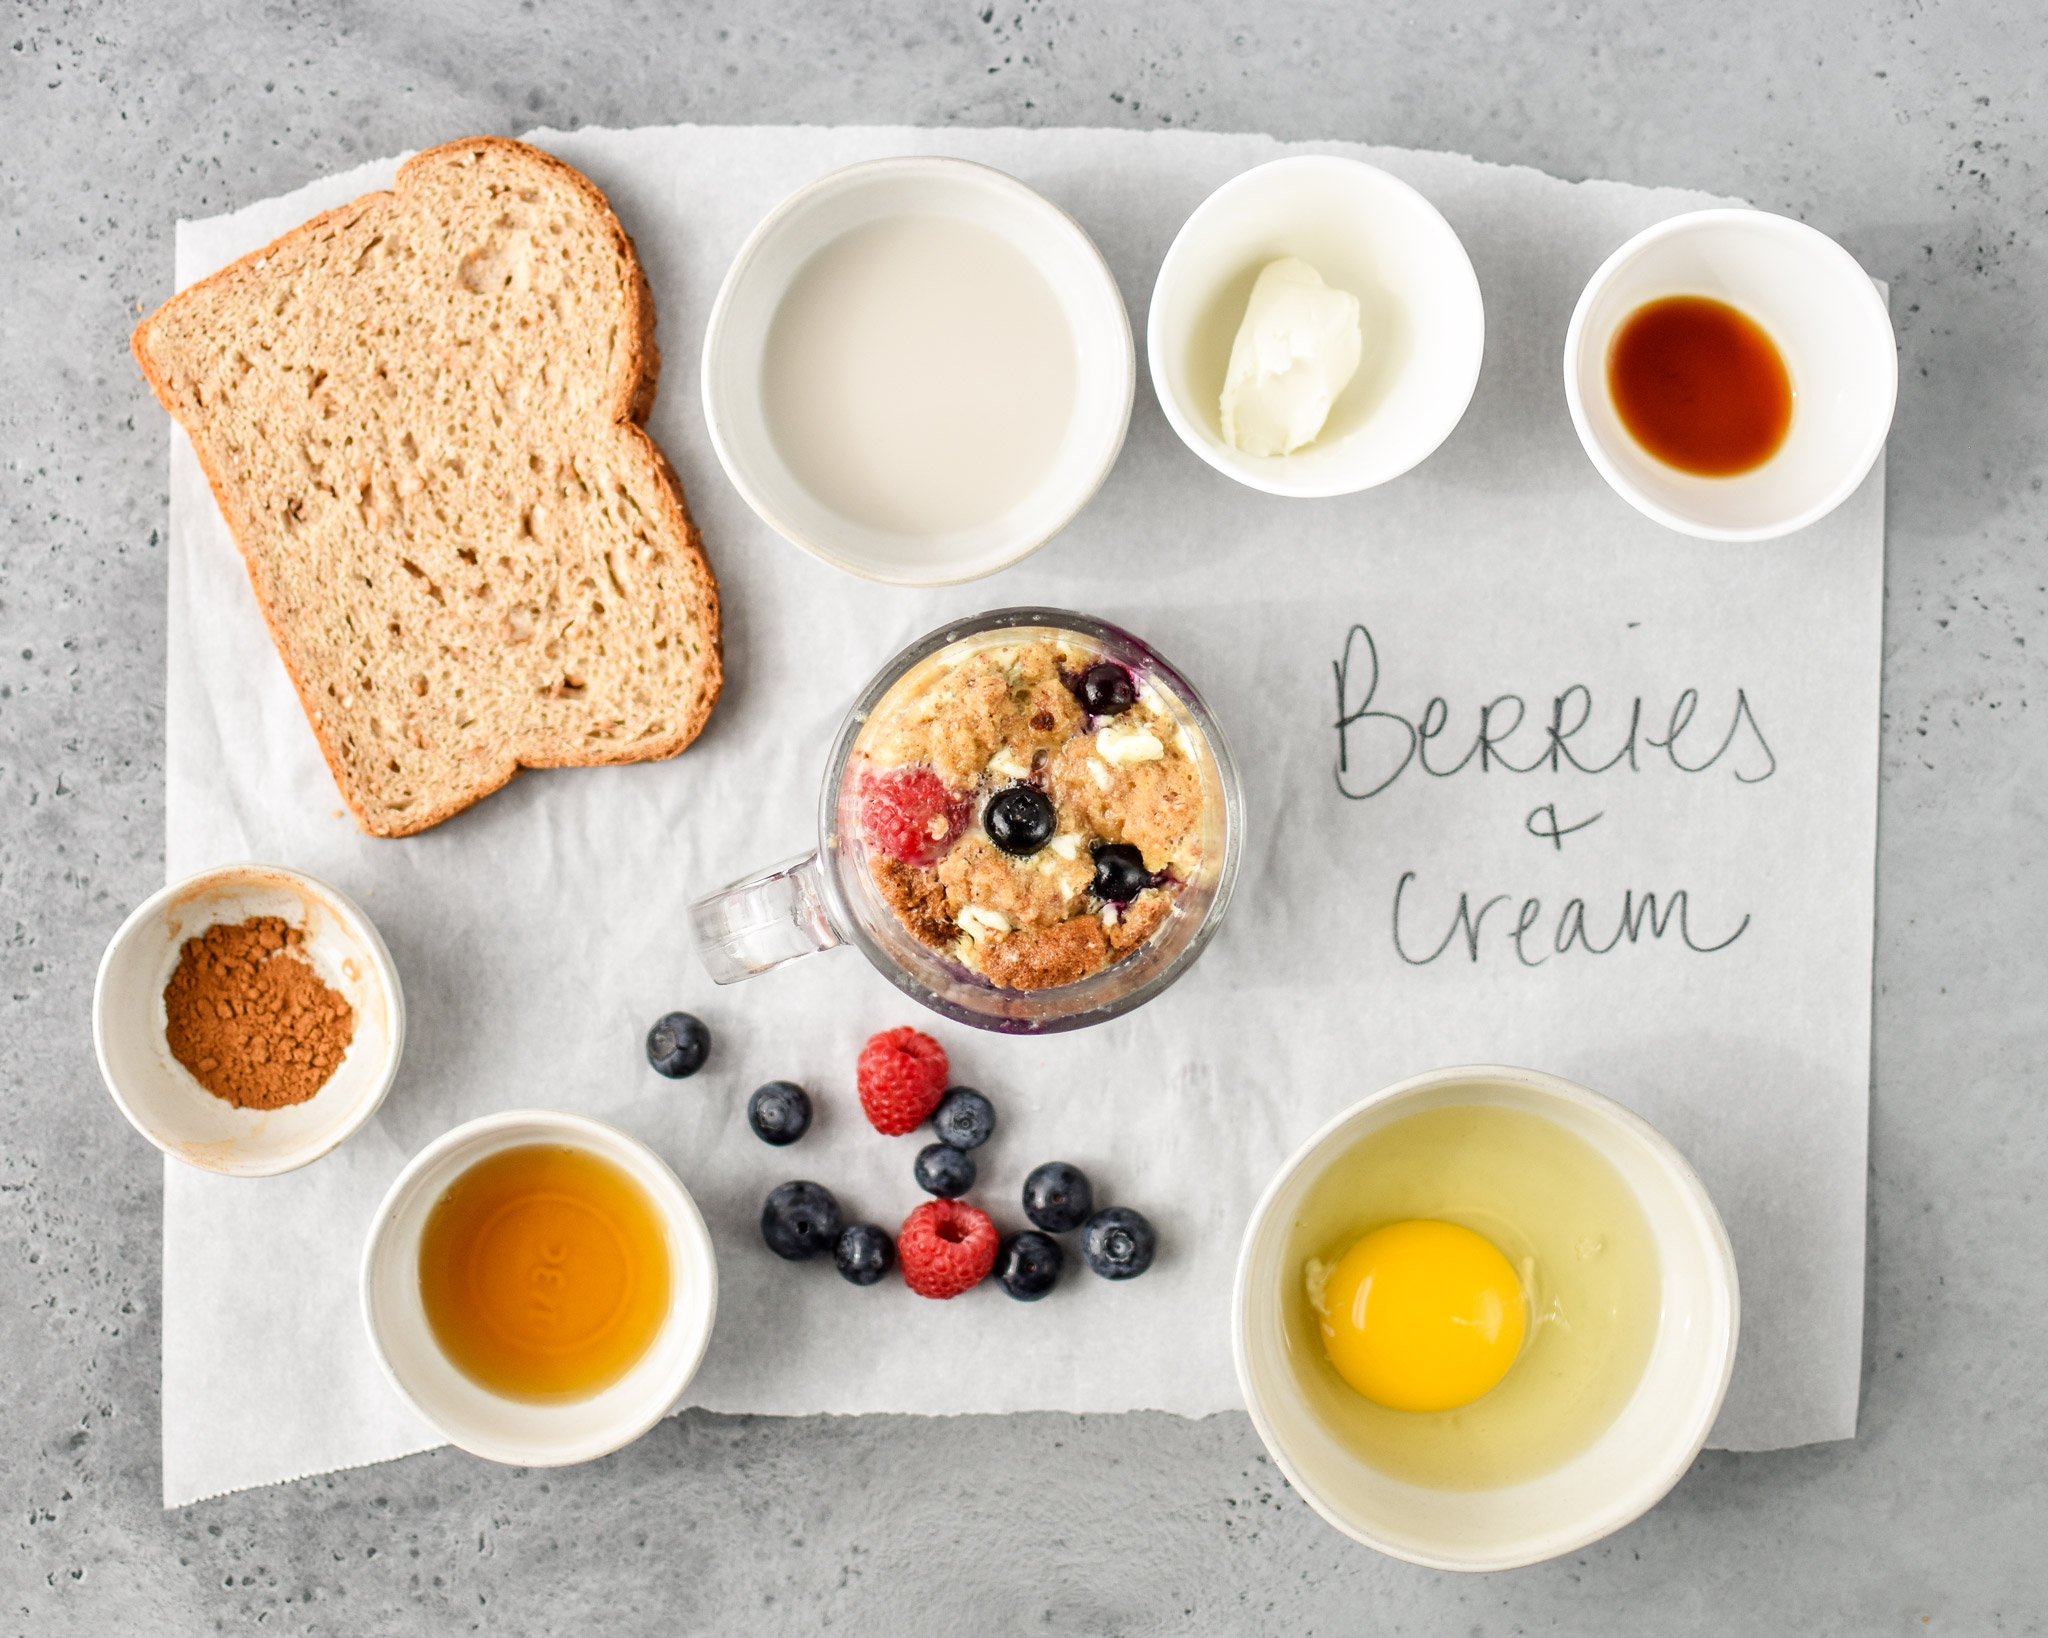 ingredients for the berries & cream microwave mug french toast